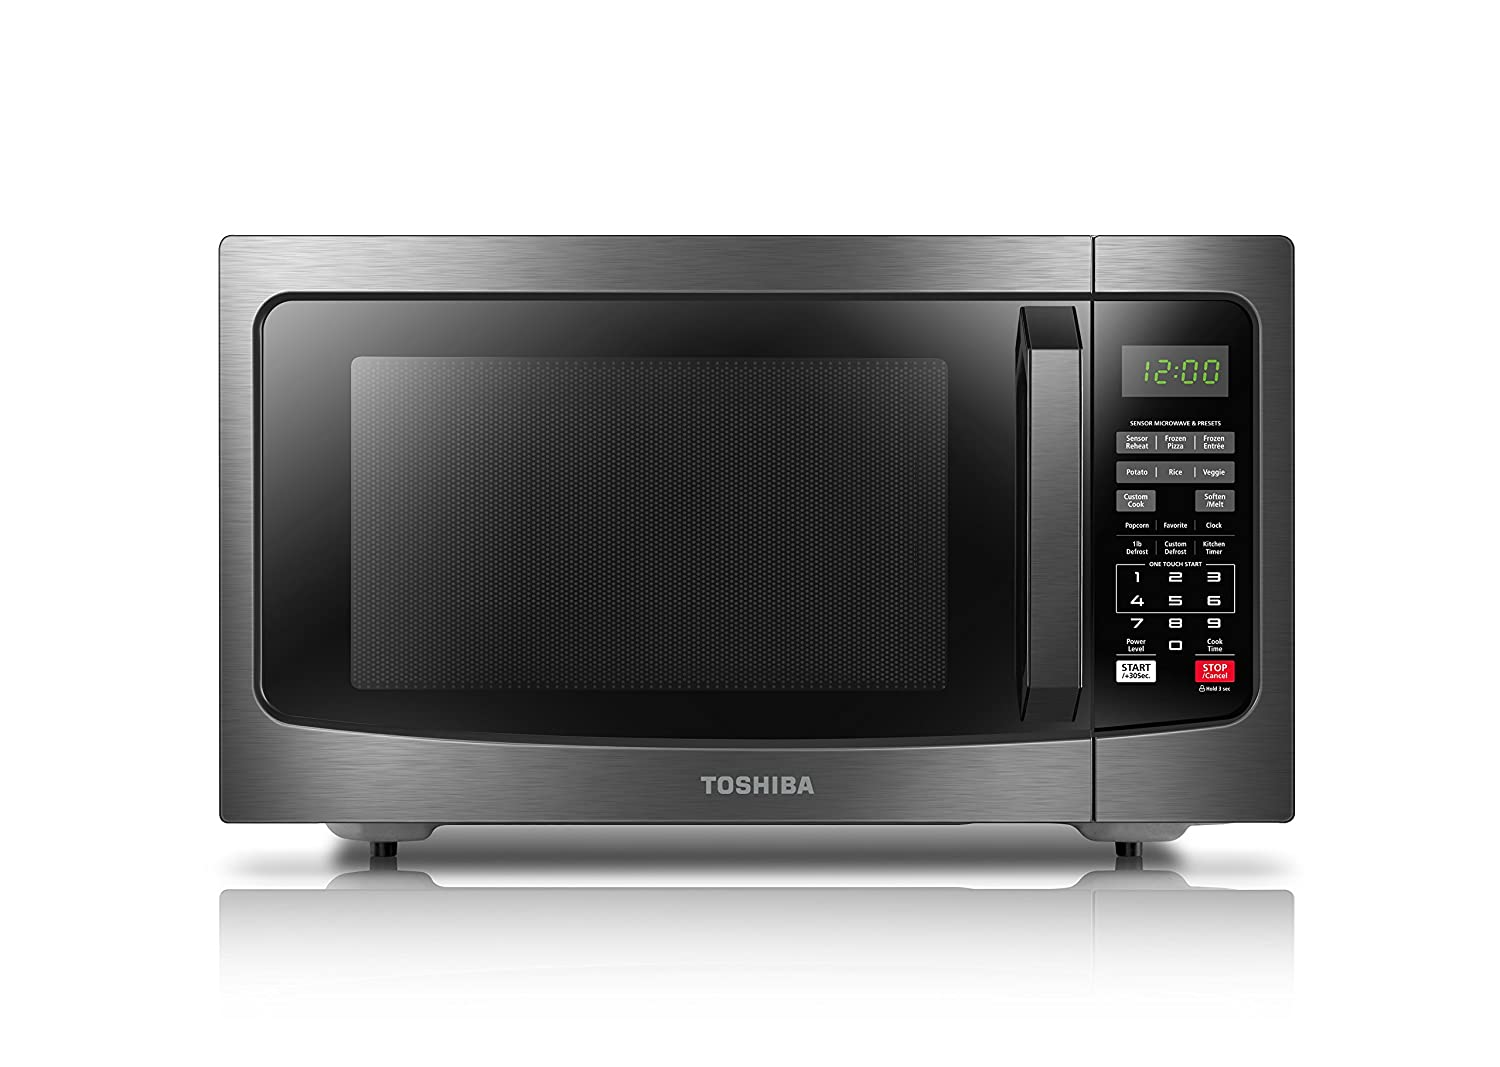 Toshiba EM131A5C-BS Microwave Oven with Smart Sensor, 1.2 Cu.ft, 1100W, Black Stainless Steel